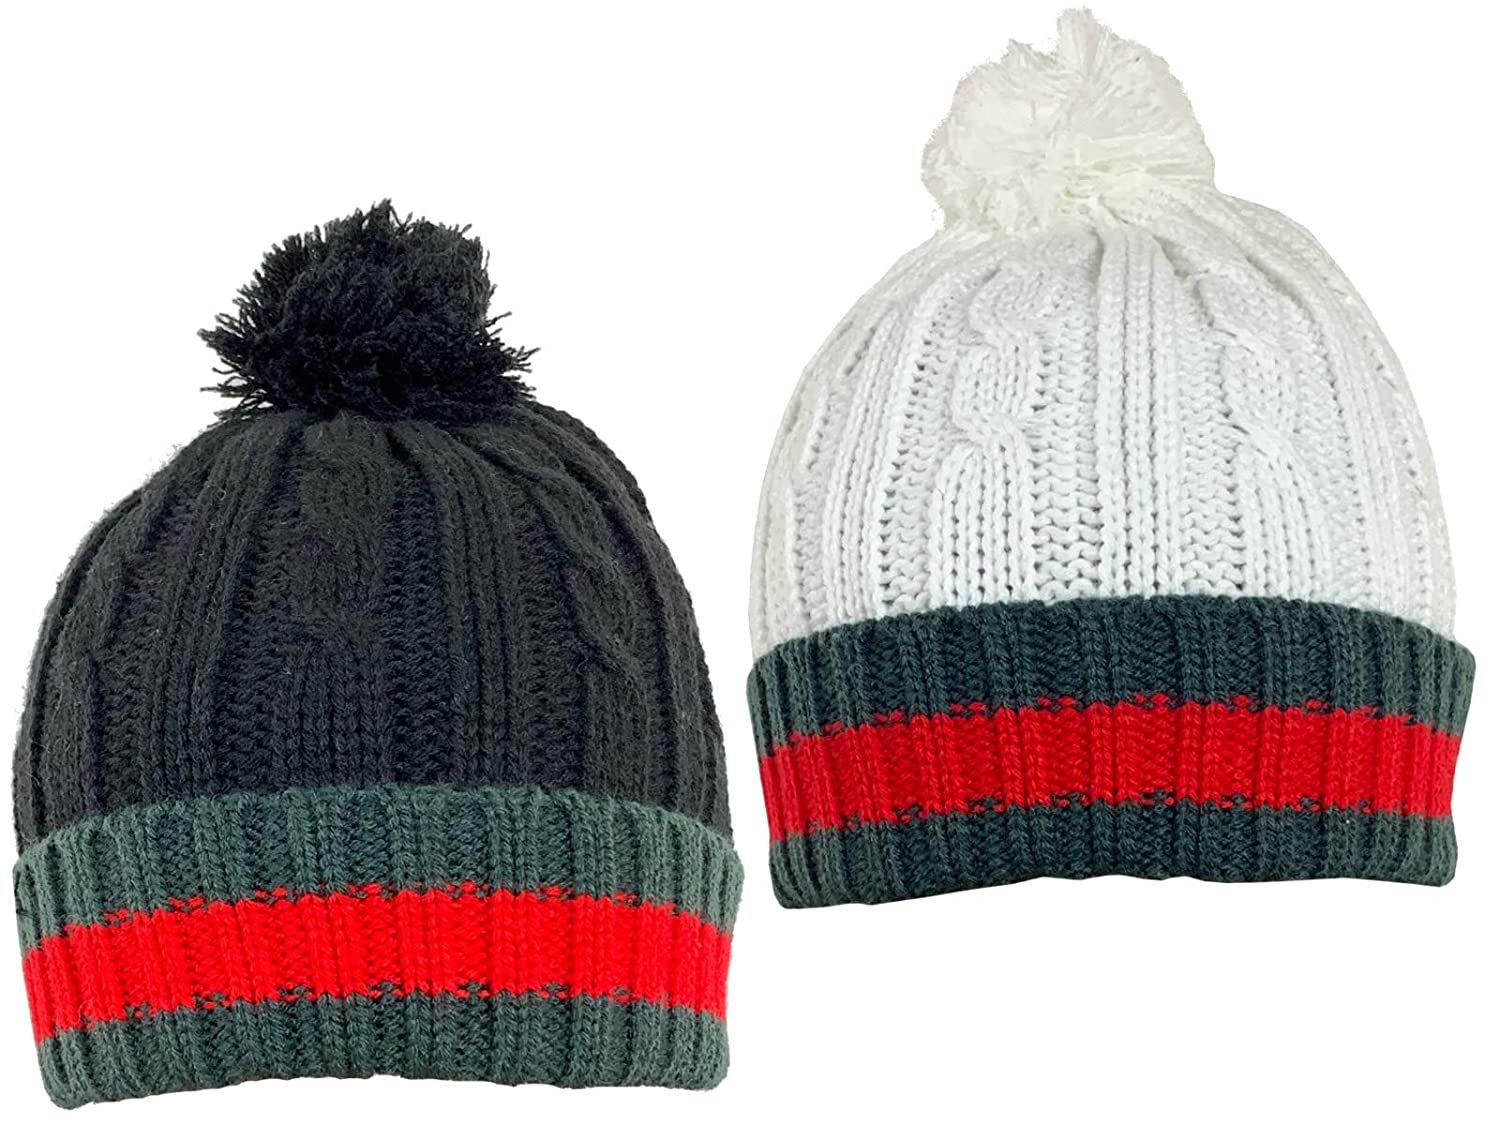 b5749e5cc Men's Design Cable Knit Wooly Hat with Bobble (Pom Pom) in Black ...